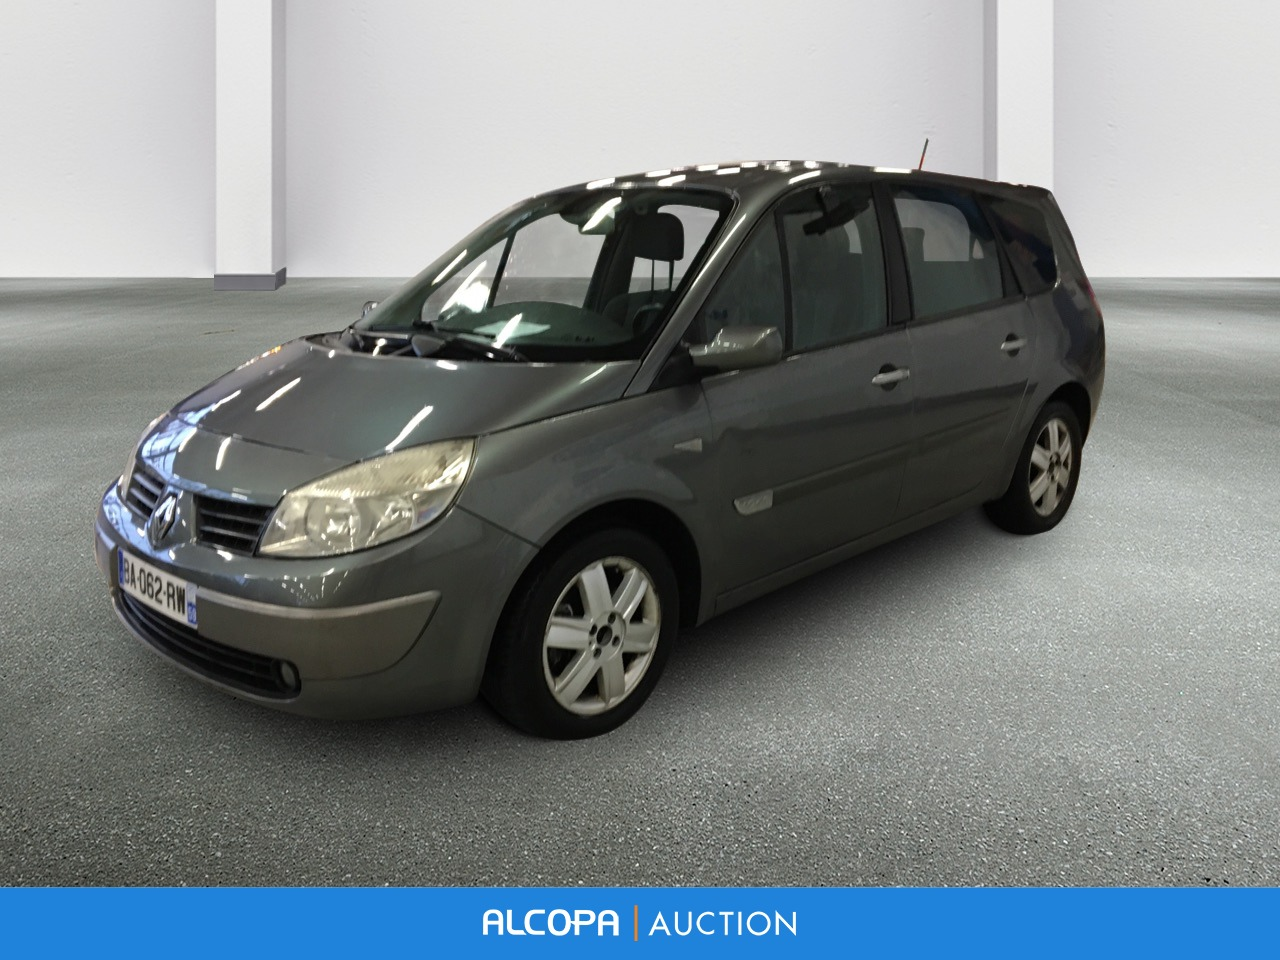 renault grand scenic ii grand scenic 1 9 dci 120 luxe dynamique 7pl alcopa auction. Black Bedroom Furniture Sets. Home Design Ideas